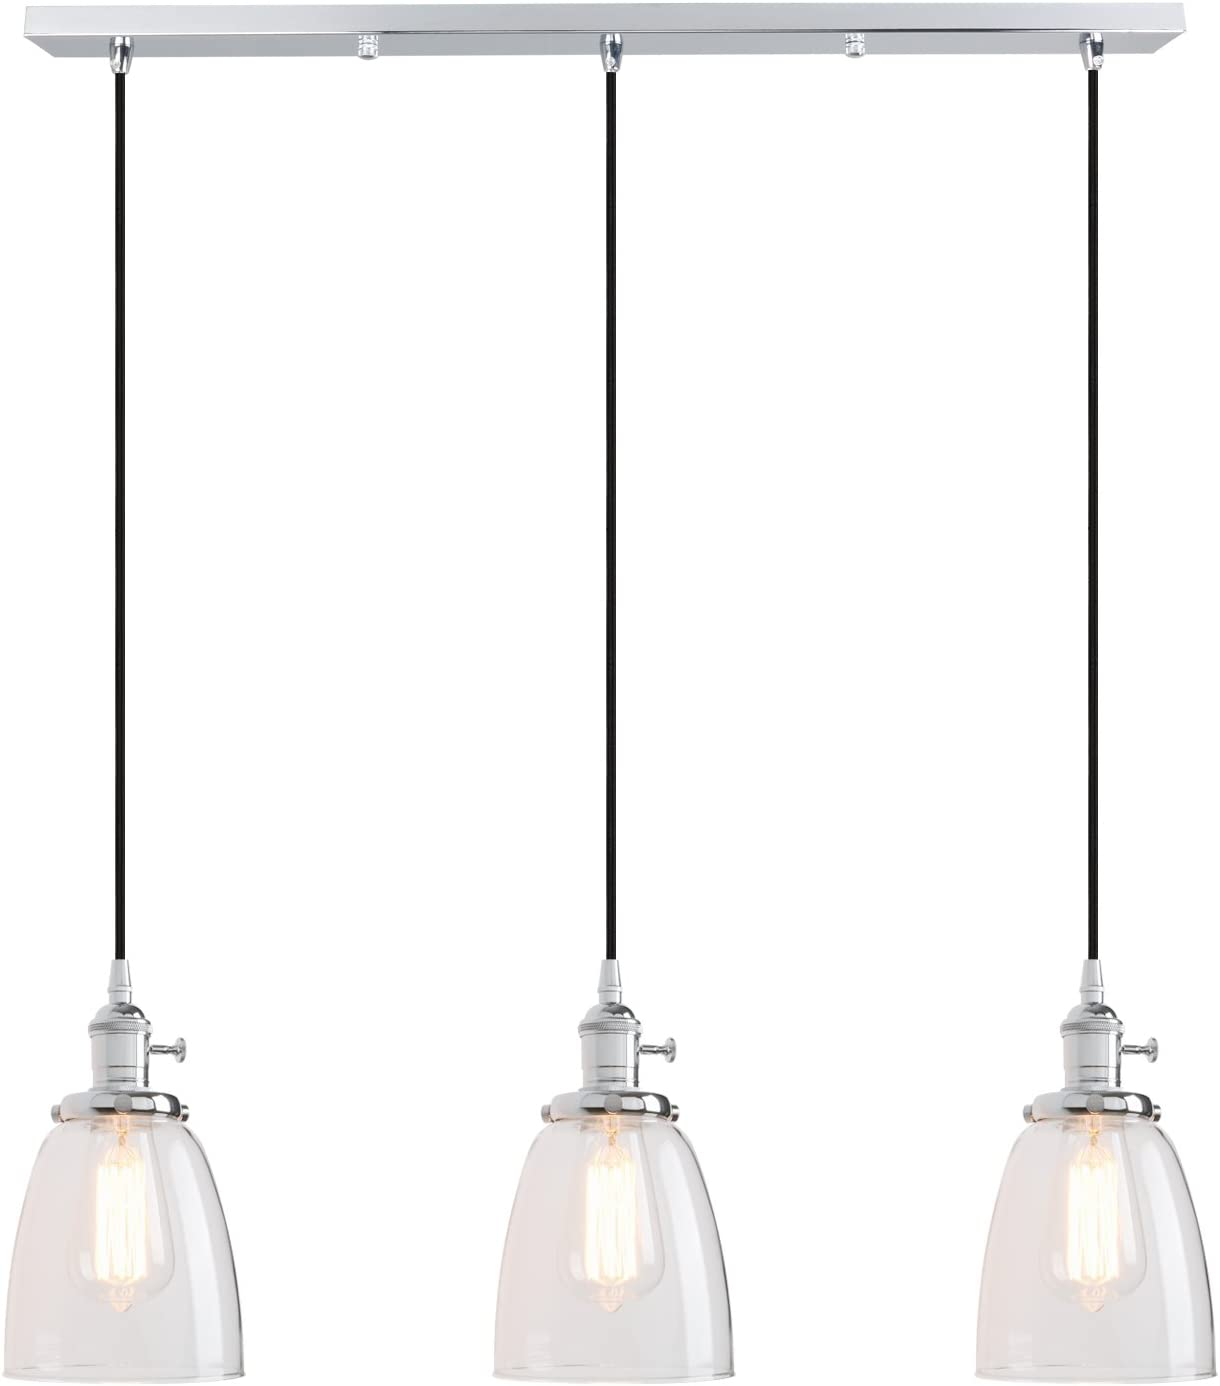 Pathson Industrial Vintage Loft Bar Kitchen Ceiling Pendant Lights Fittings Cluster Chandelier Glass Lampshade Hanging 3 Lights Fixture for Island Living Room Dining Room Bedroom Office (Chrome)